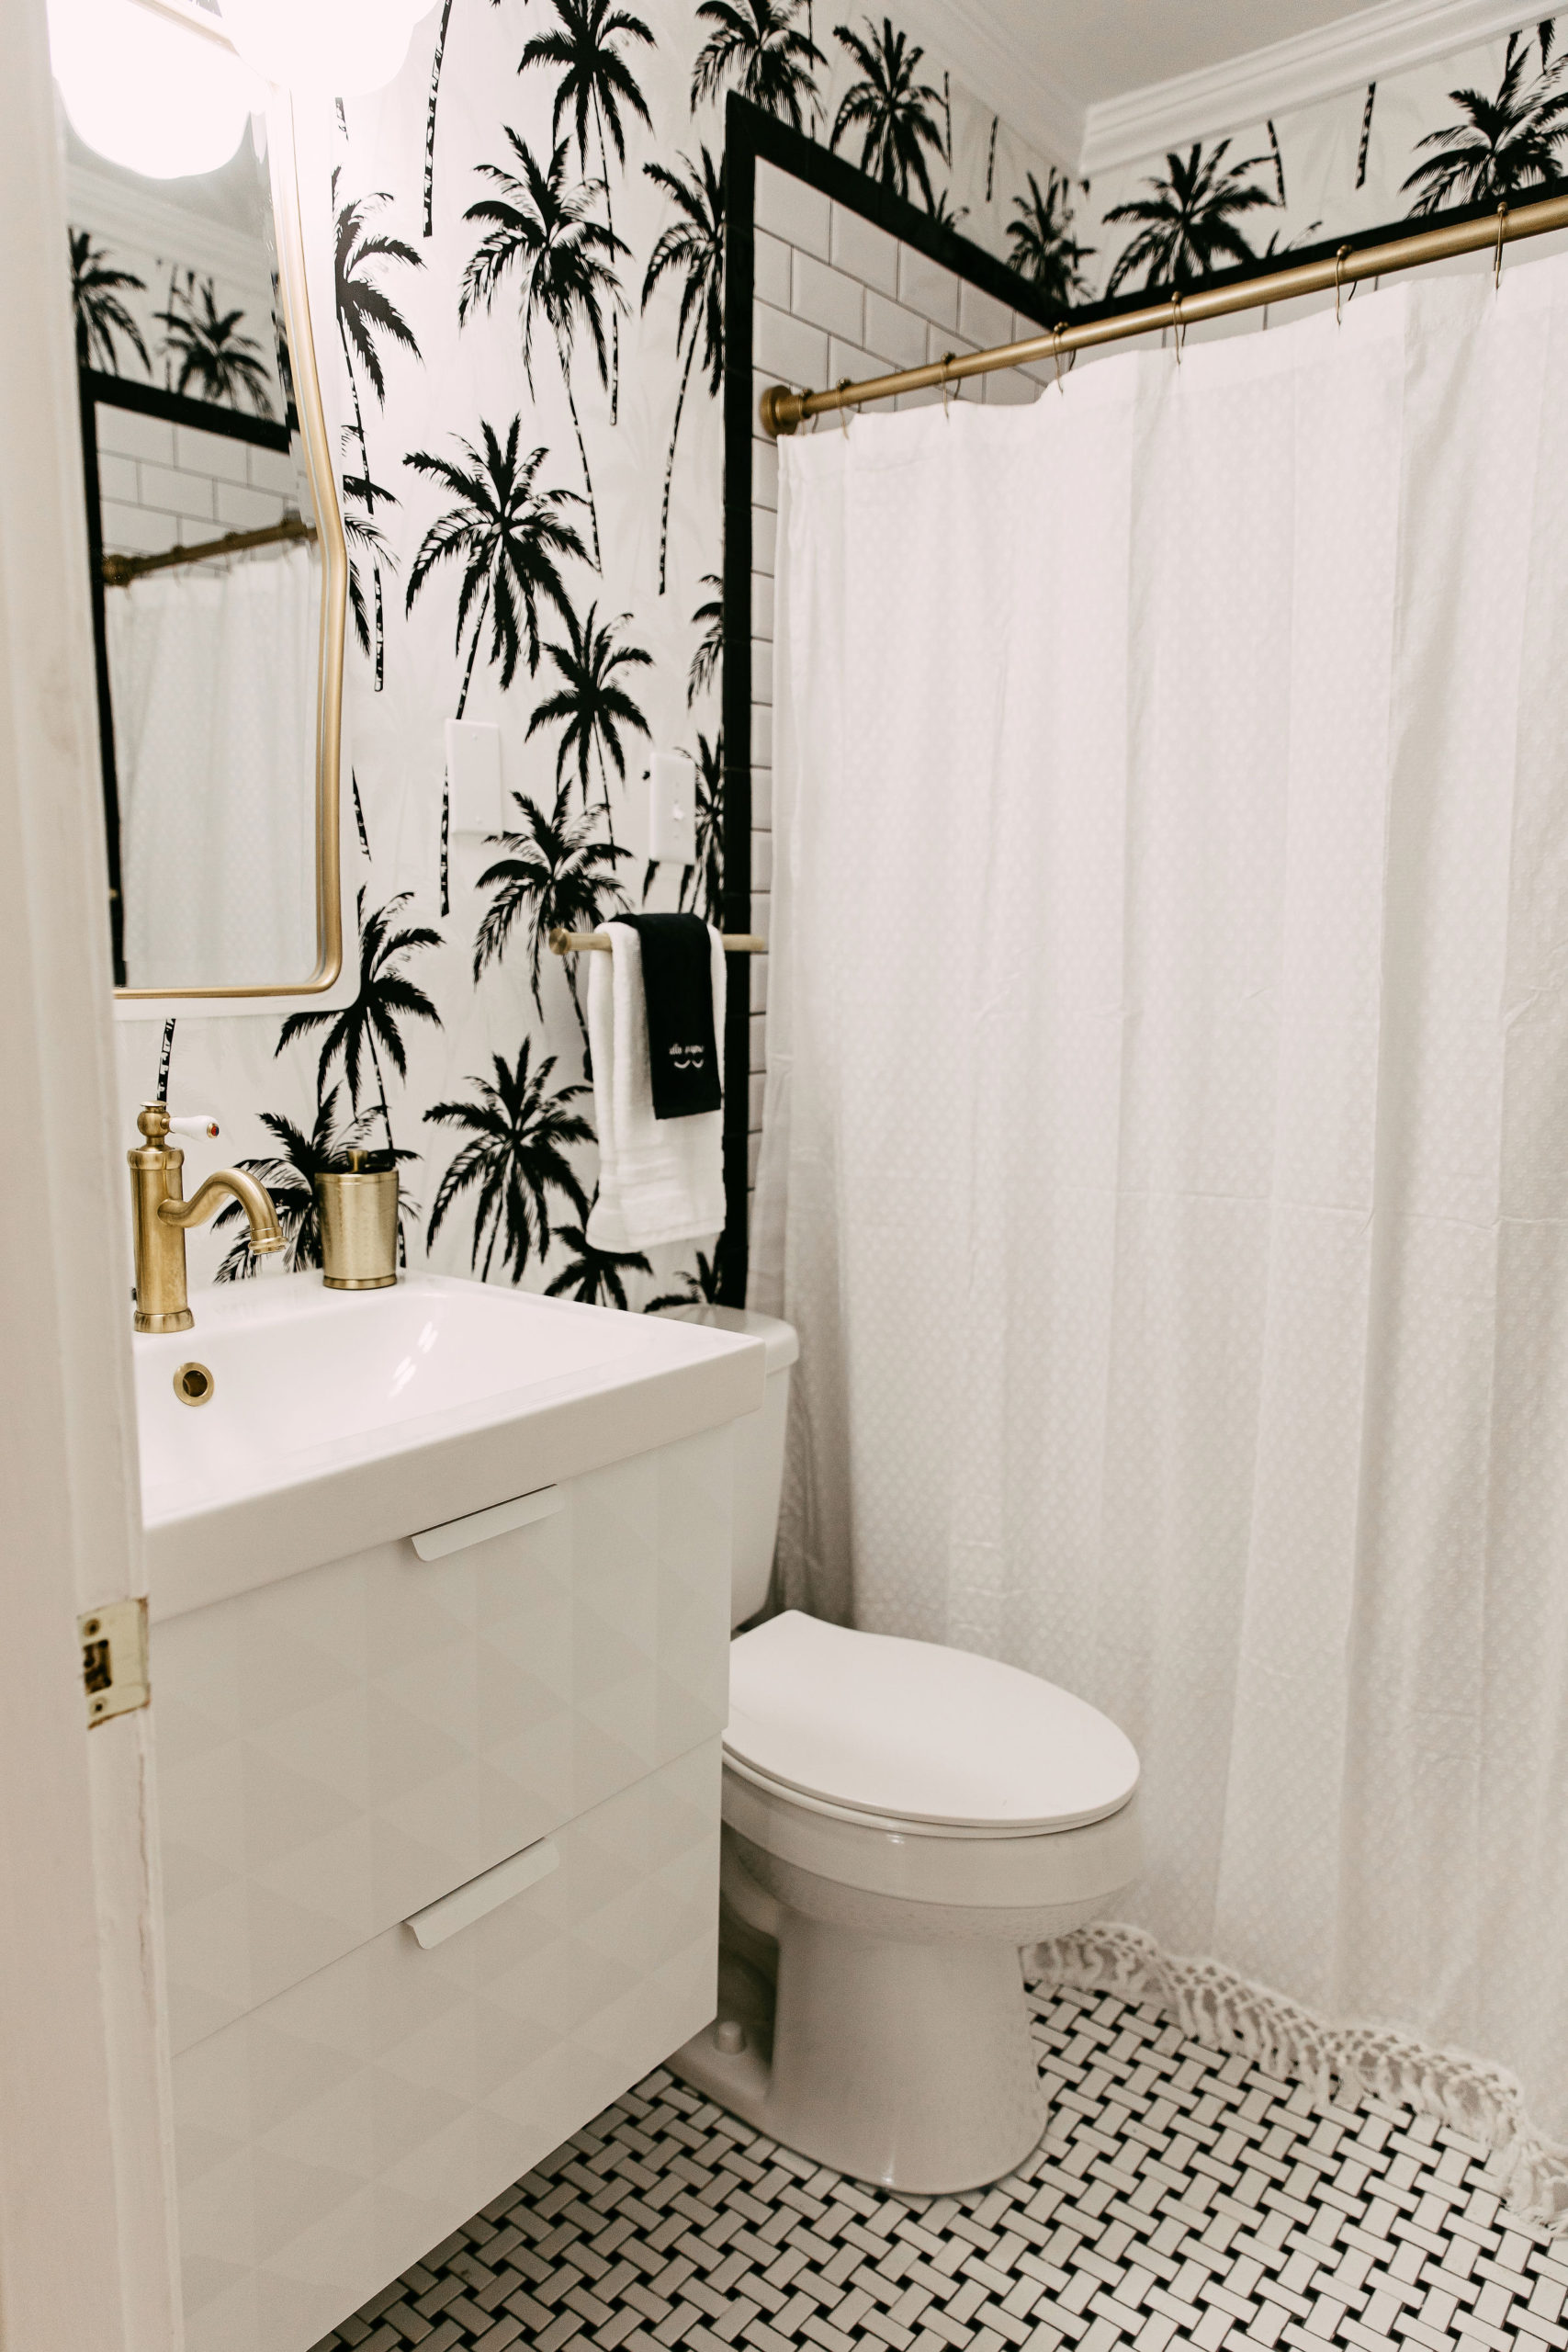 Instagram-worthy AirBNB properties to visit | Black and White Palm Tree Wallpaper | Louella Reese